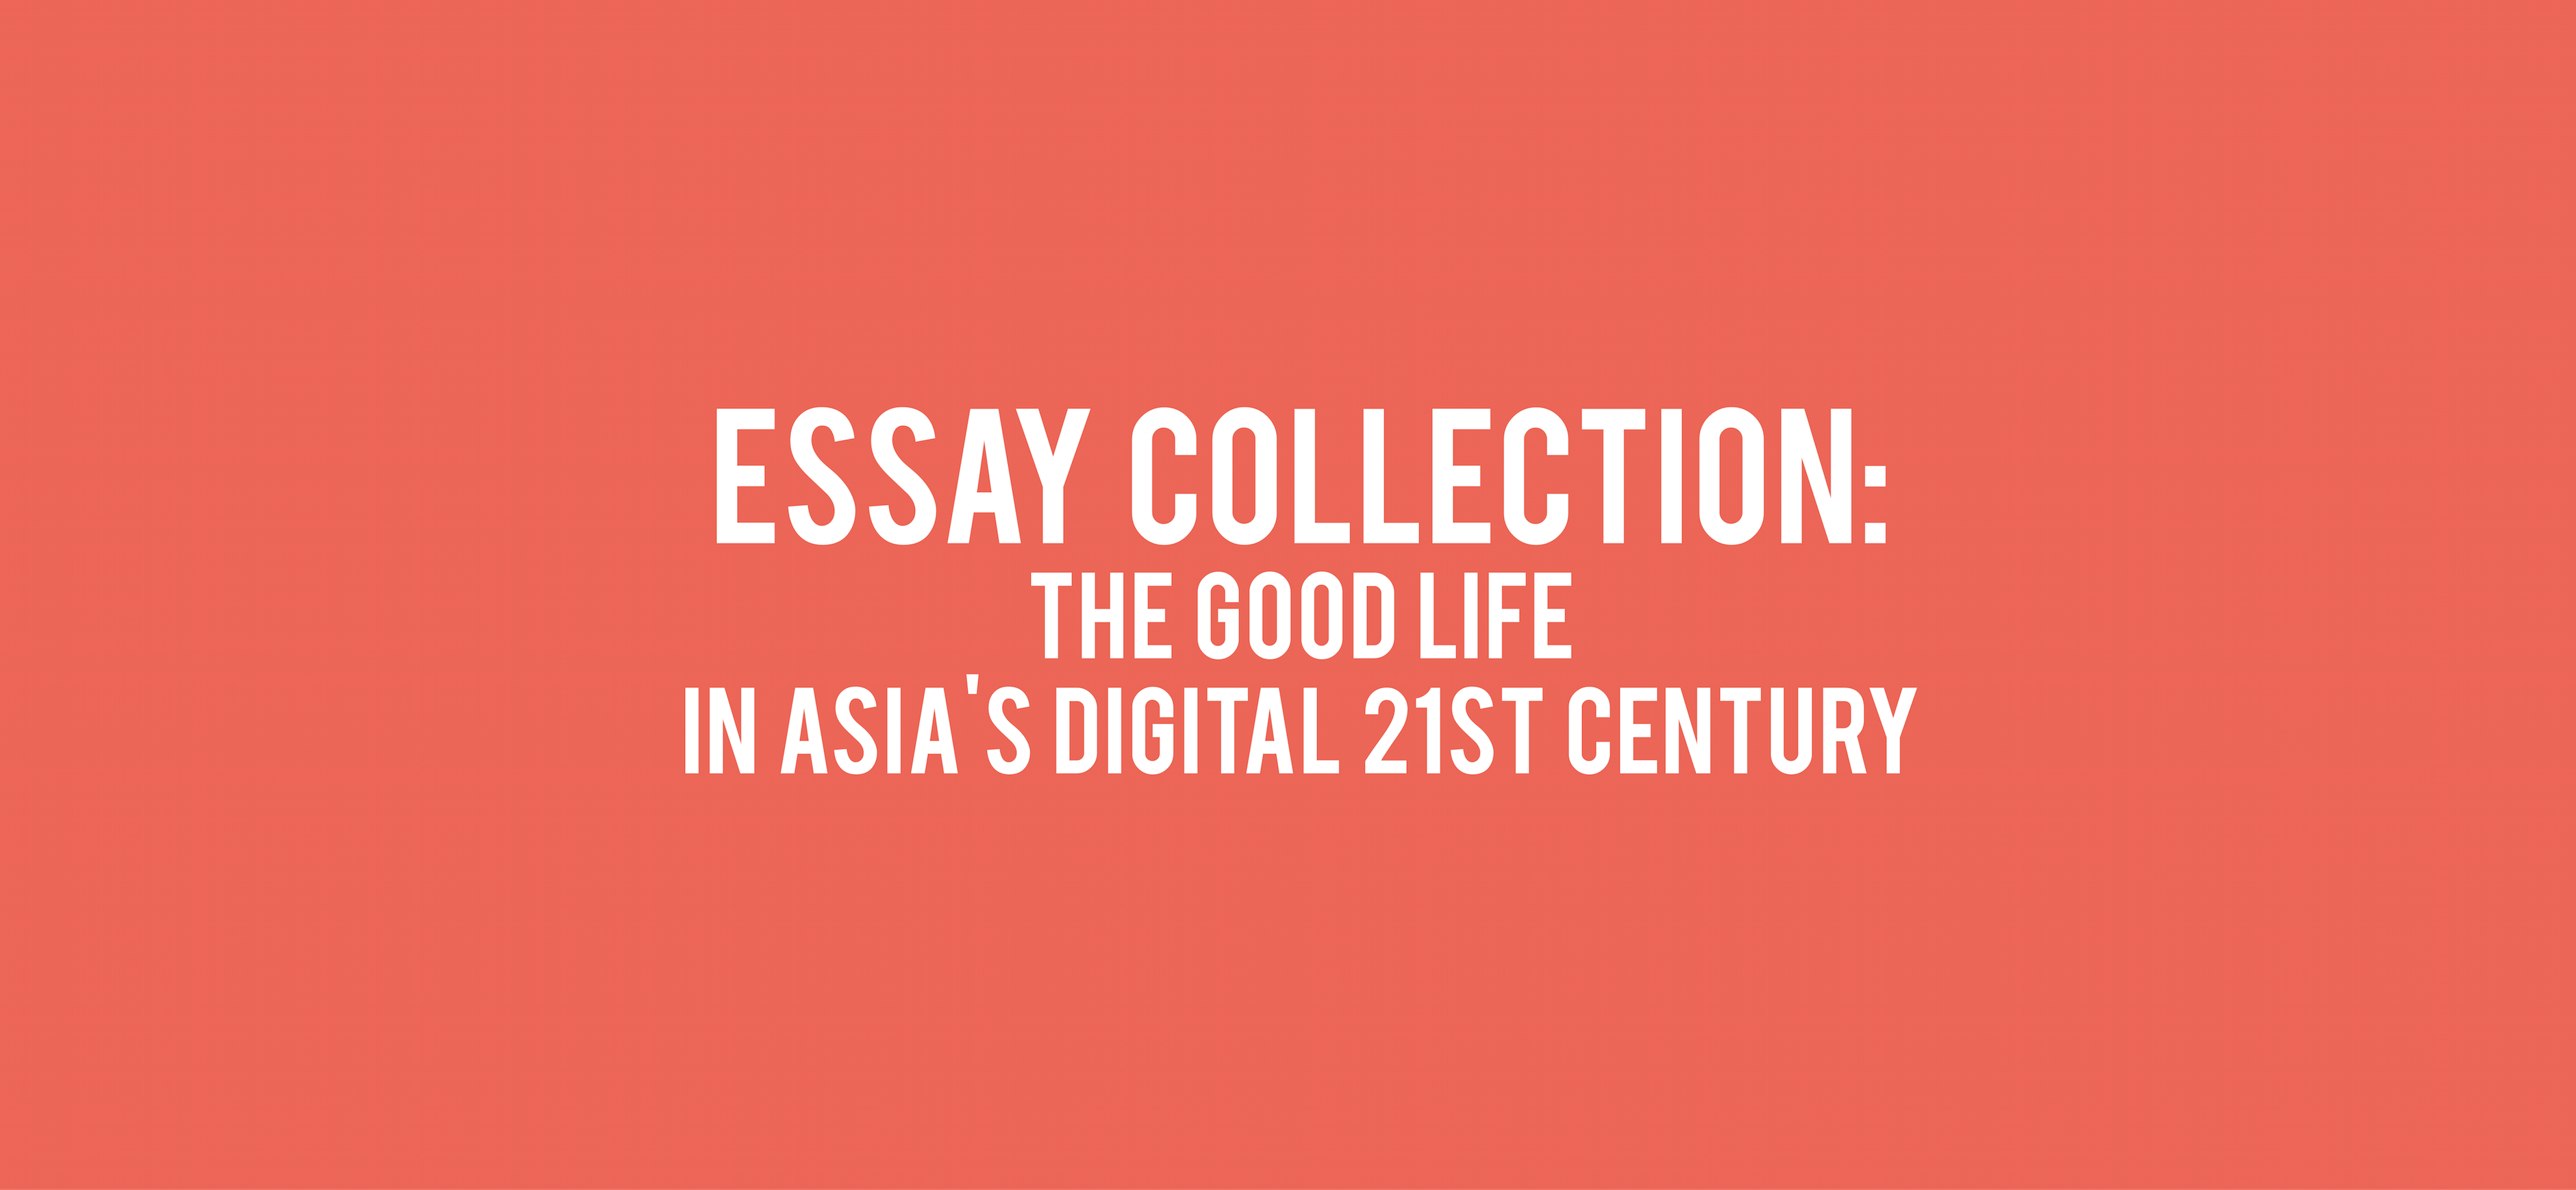 027 Essay Collection Untitled Shocking Collections For Students 2017 Best Pdf Full